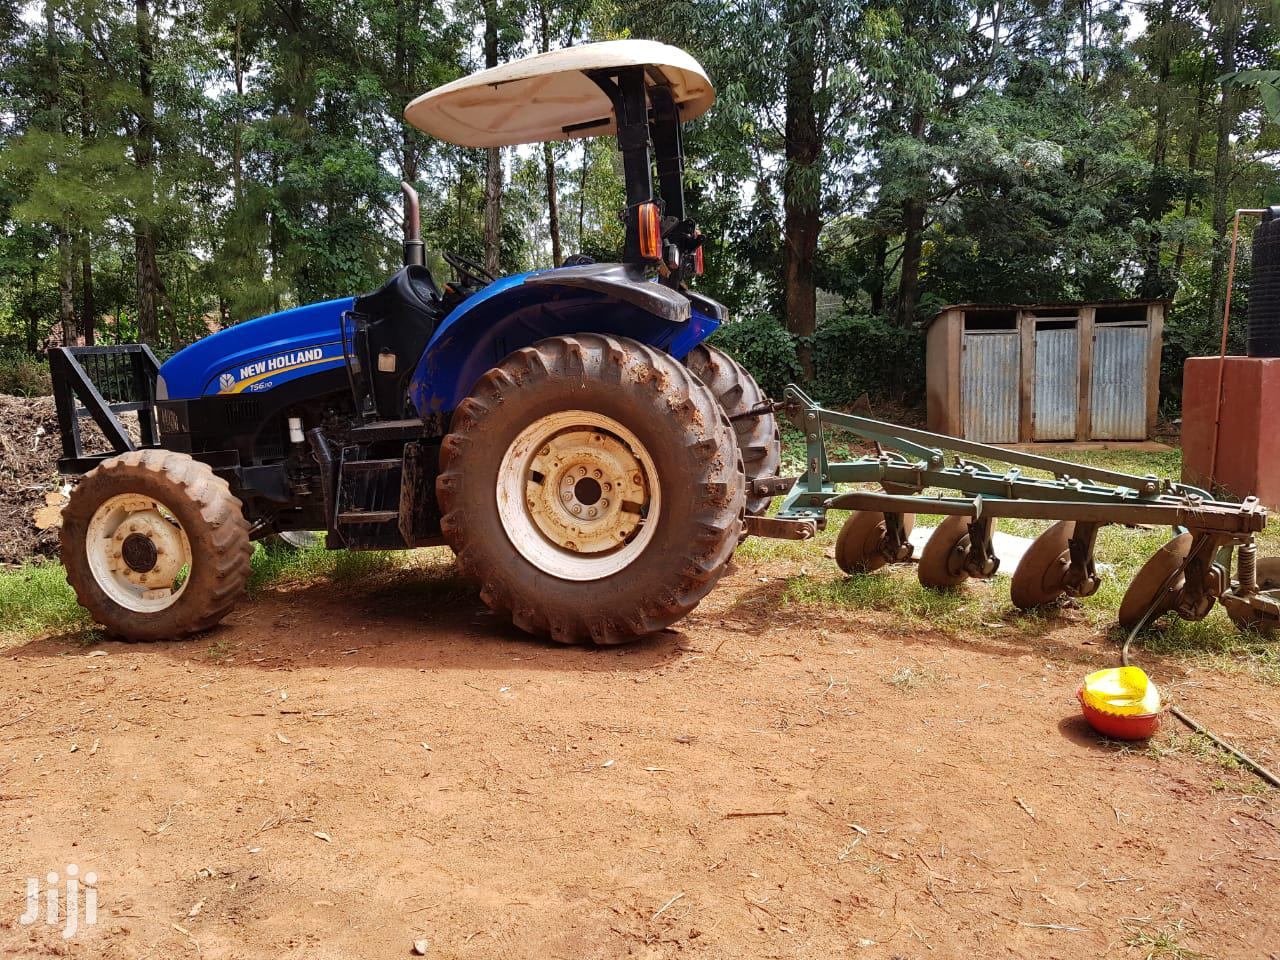 For Sale New Holland In Excellent Condition Ts6 110 4WD